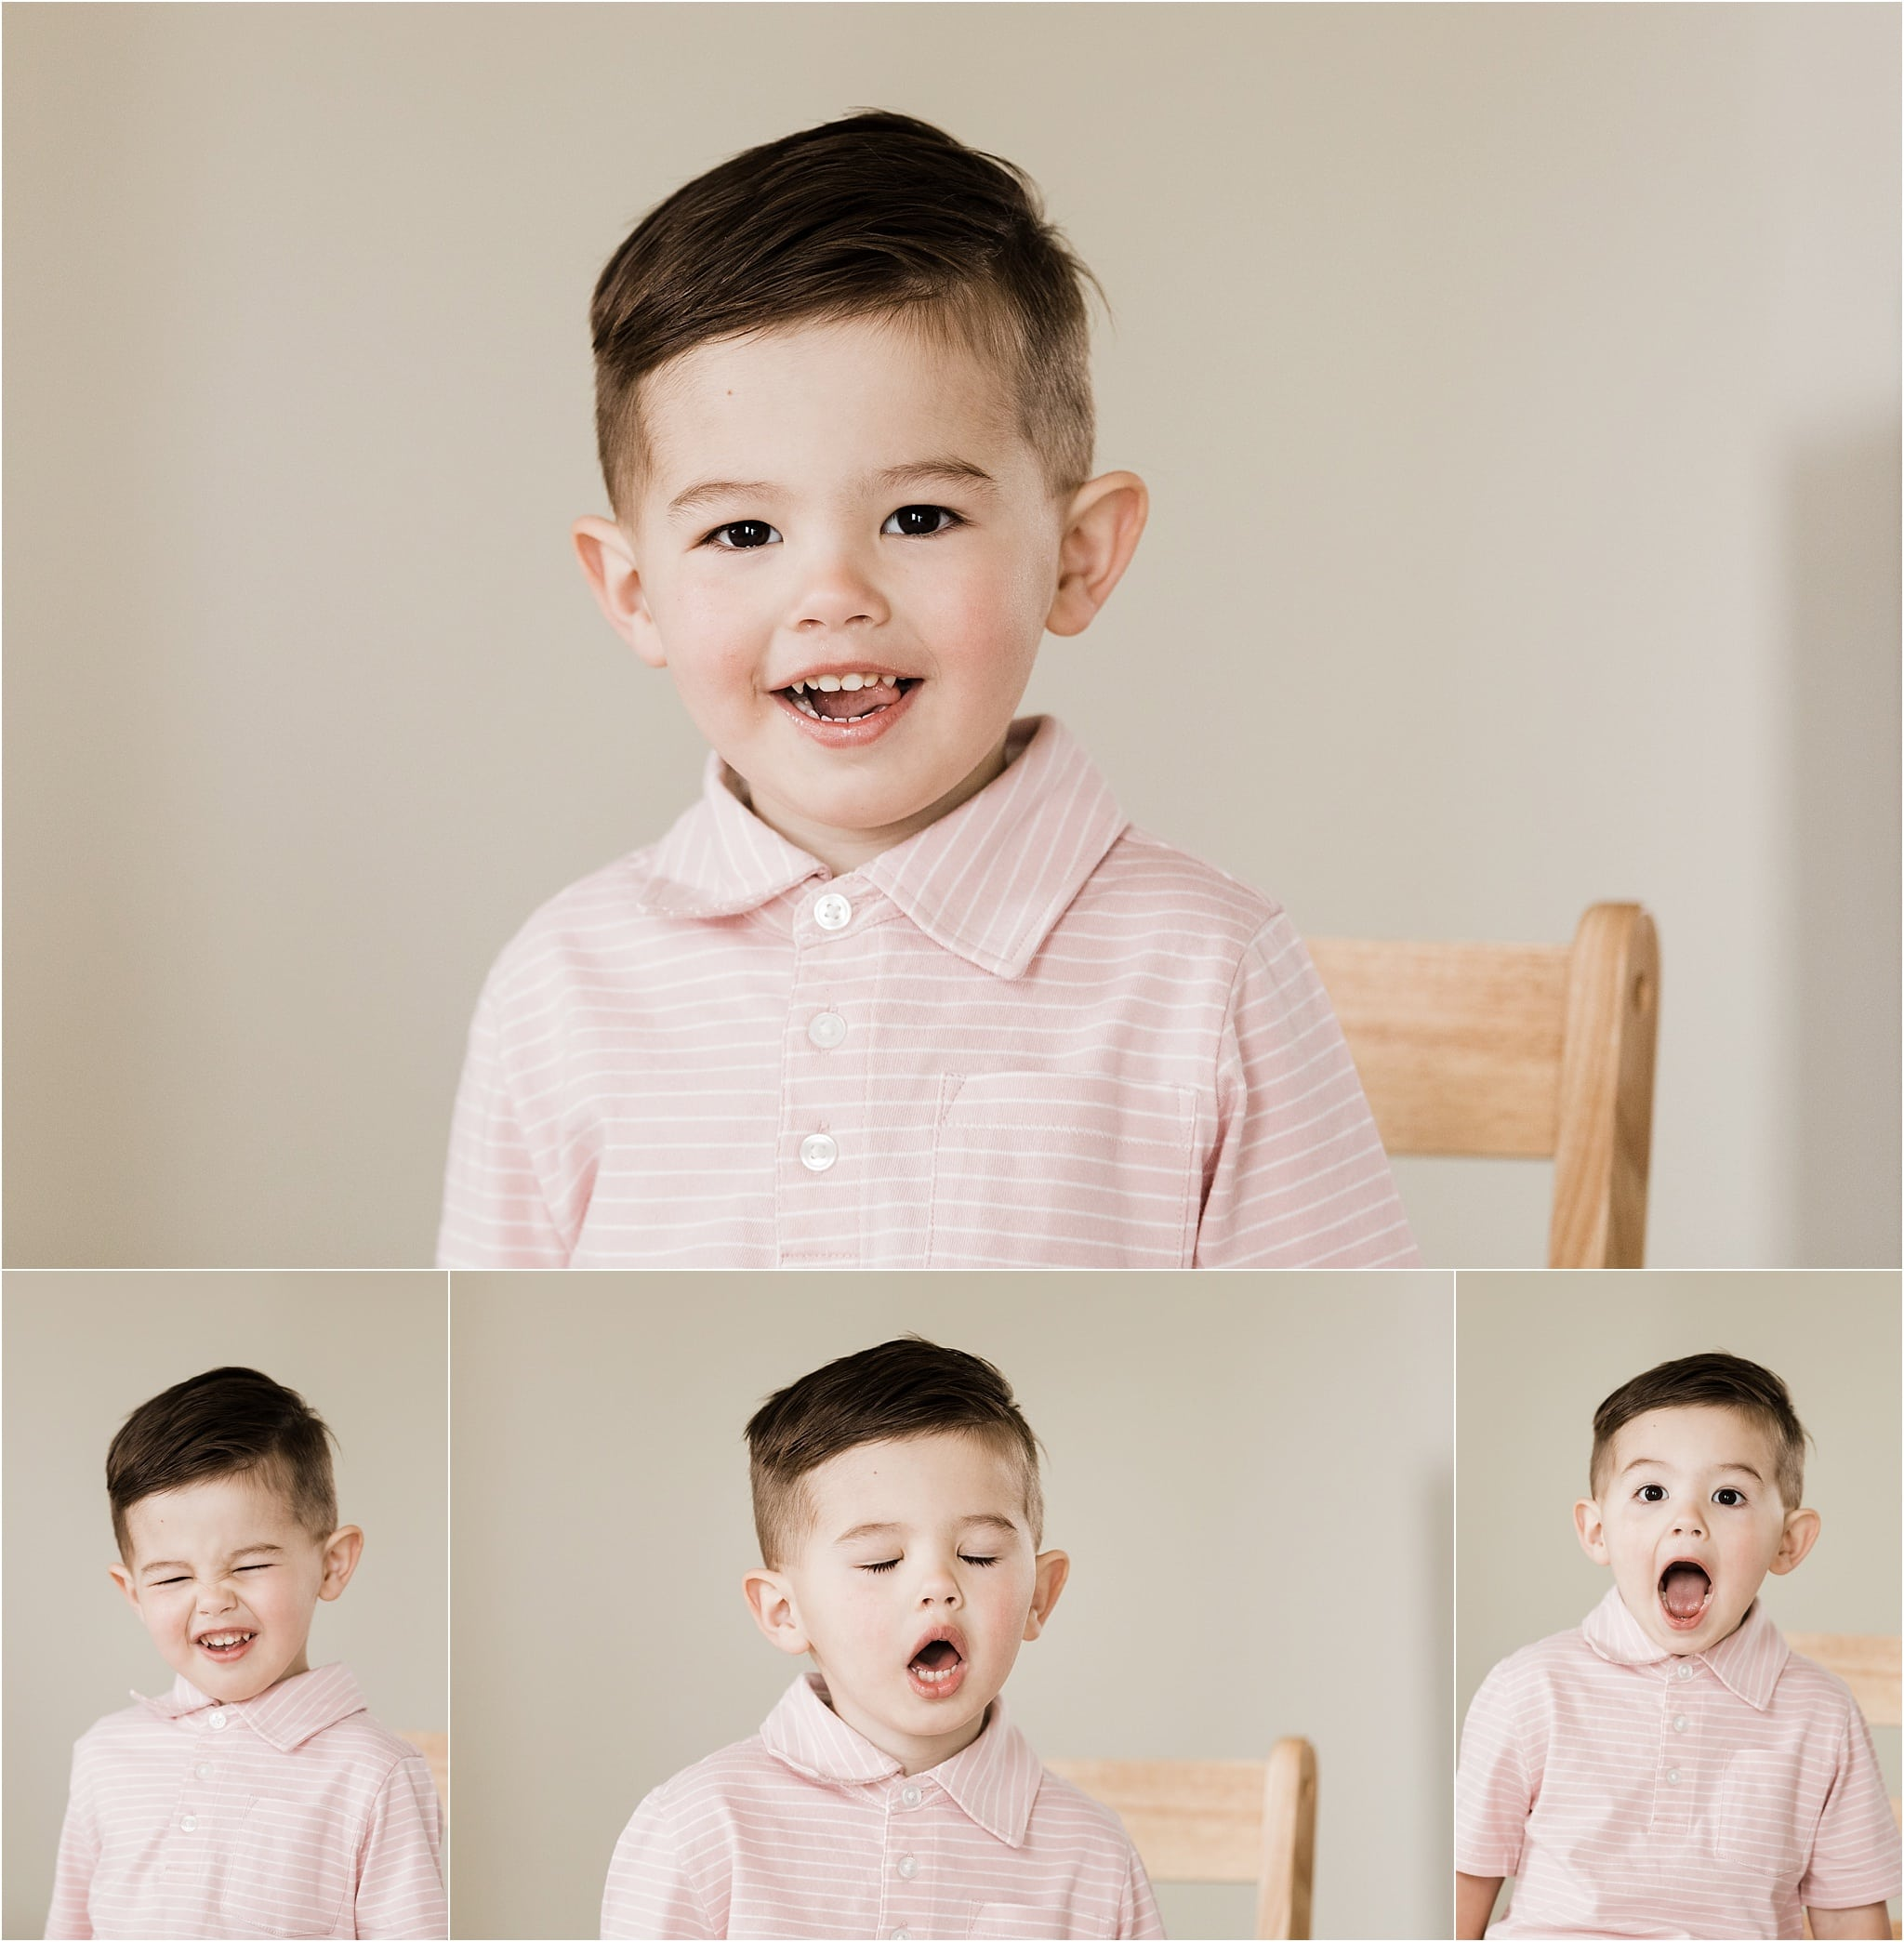 toddler boy smiling and making silly faces in photos at home